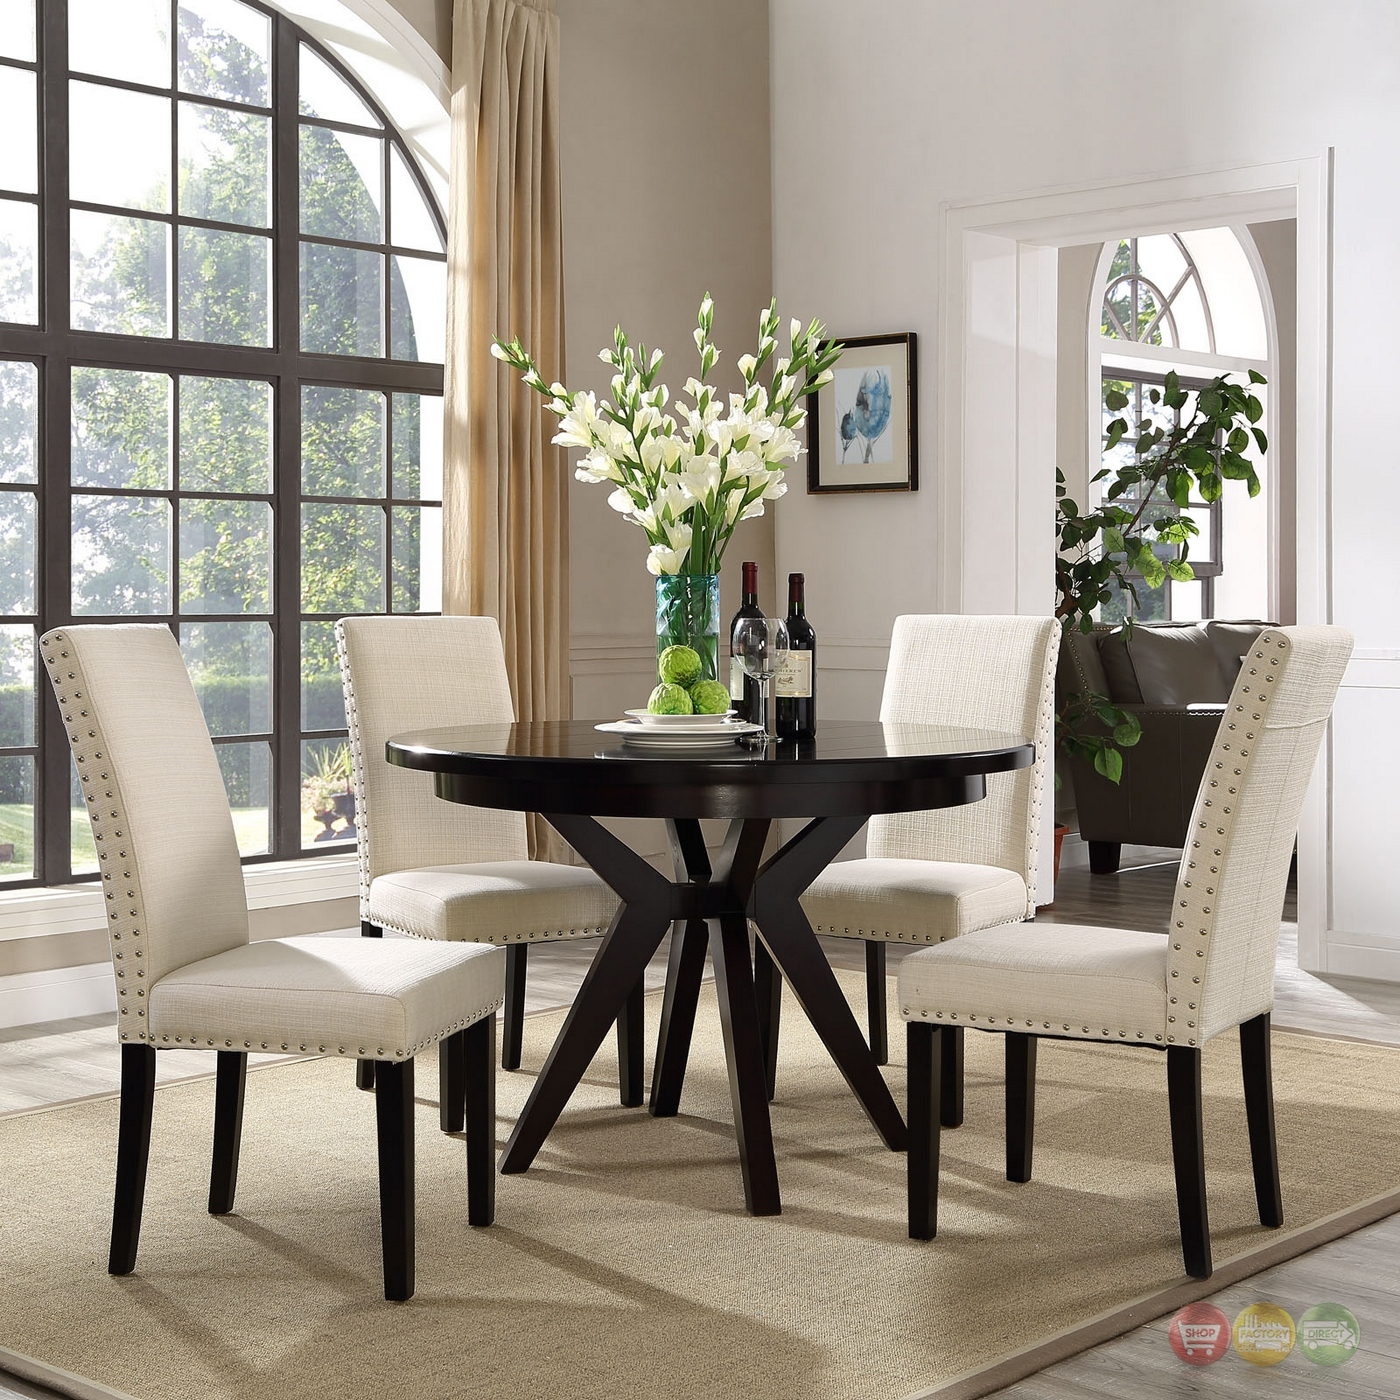 Upholster Dining Room Chairs: Parcel Modern Upholstered Dining Side Chair With Nail Head